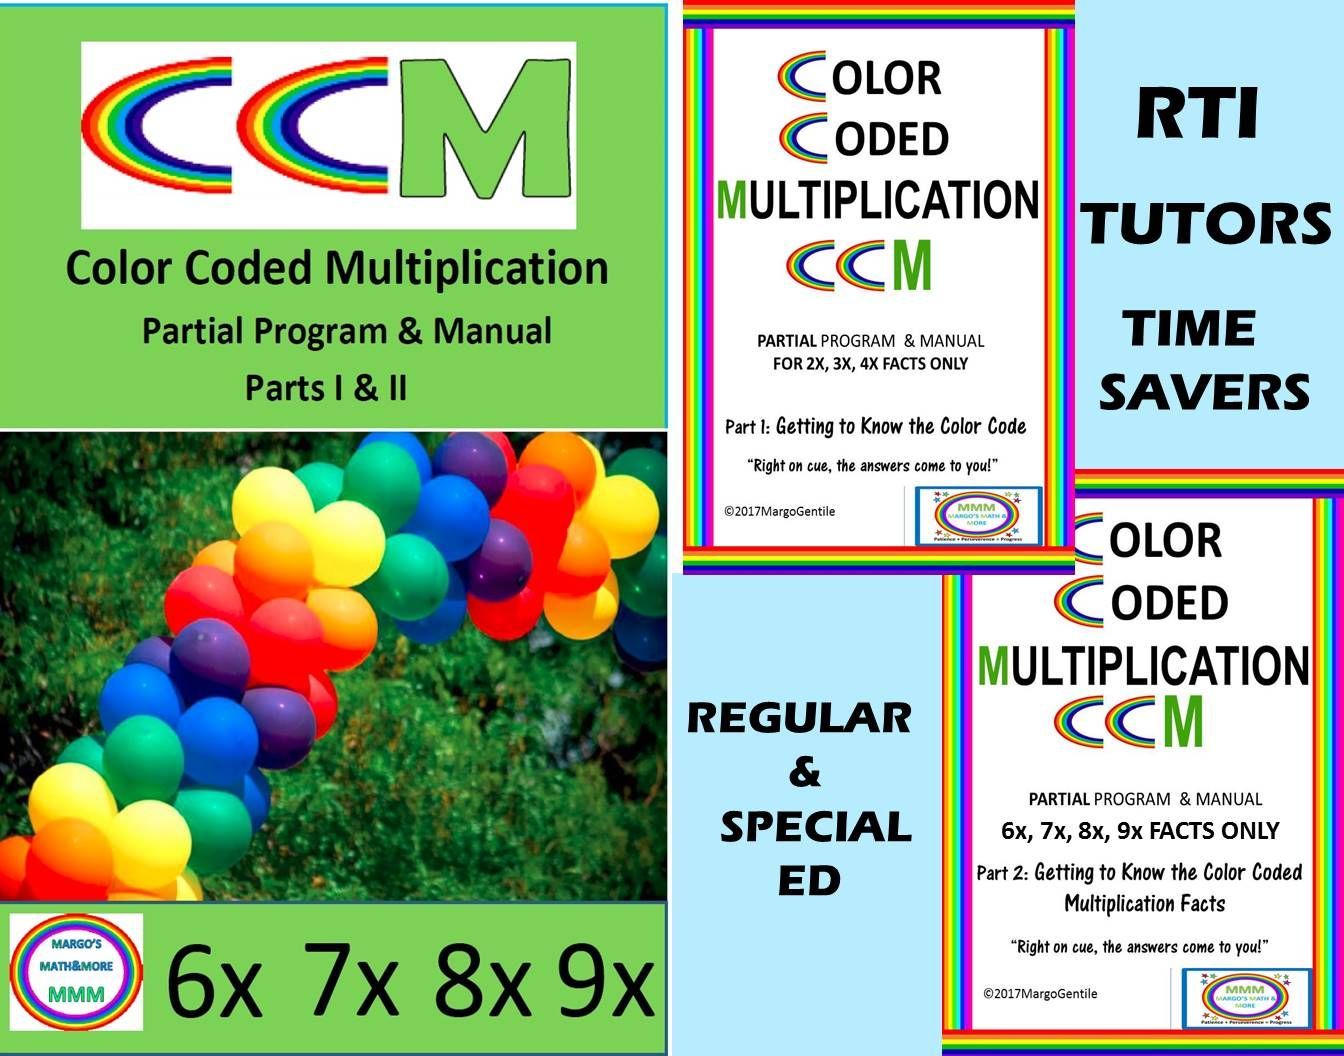 Color Coded Multiplication Program For 6x 7x 8x 9x